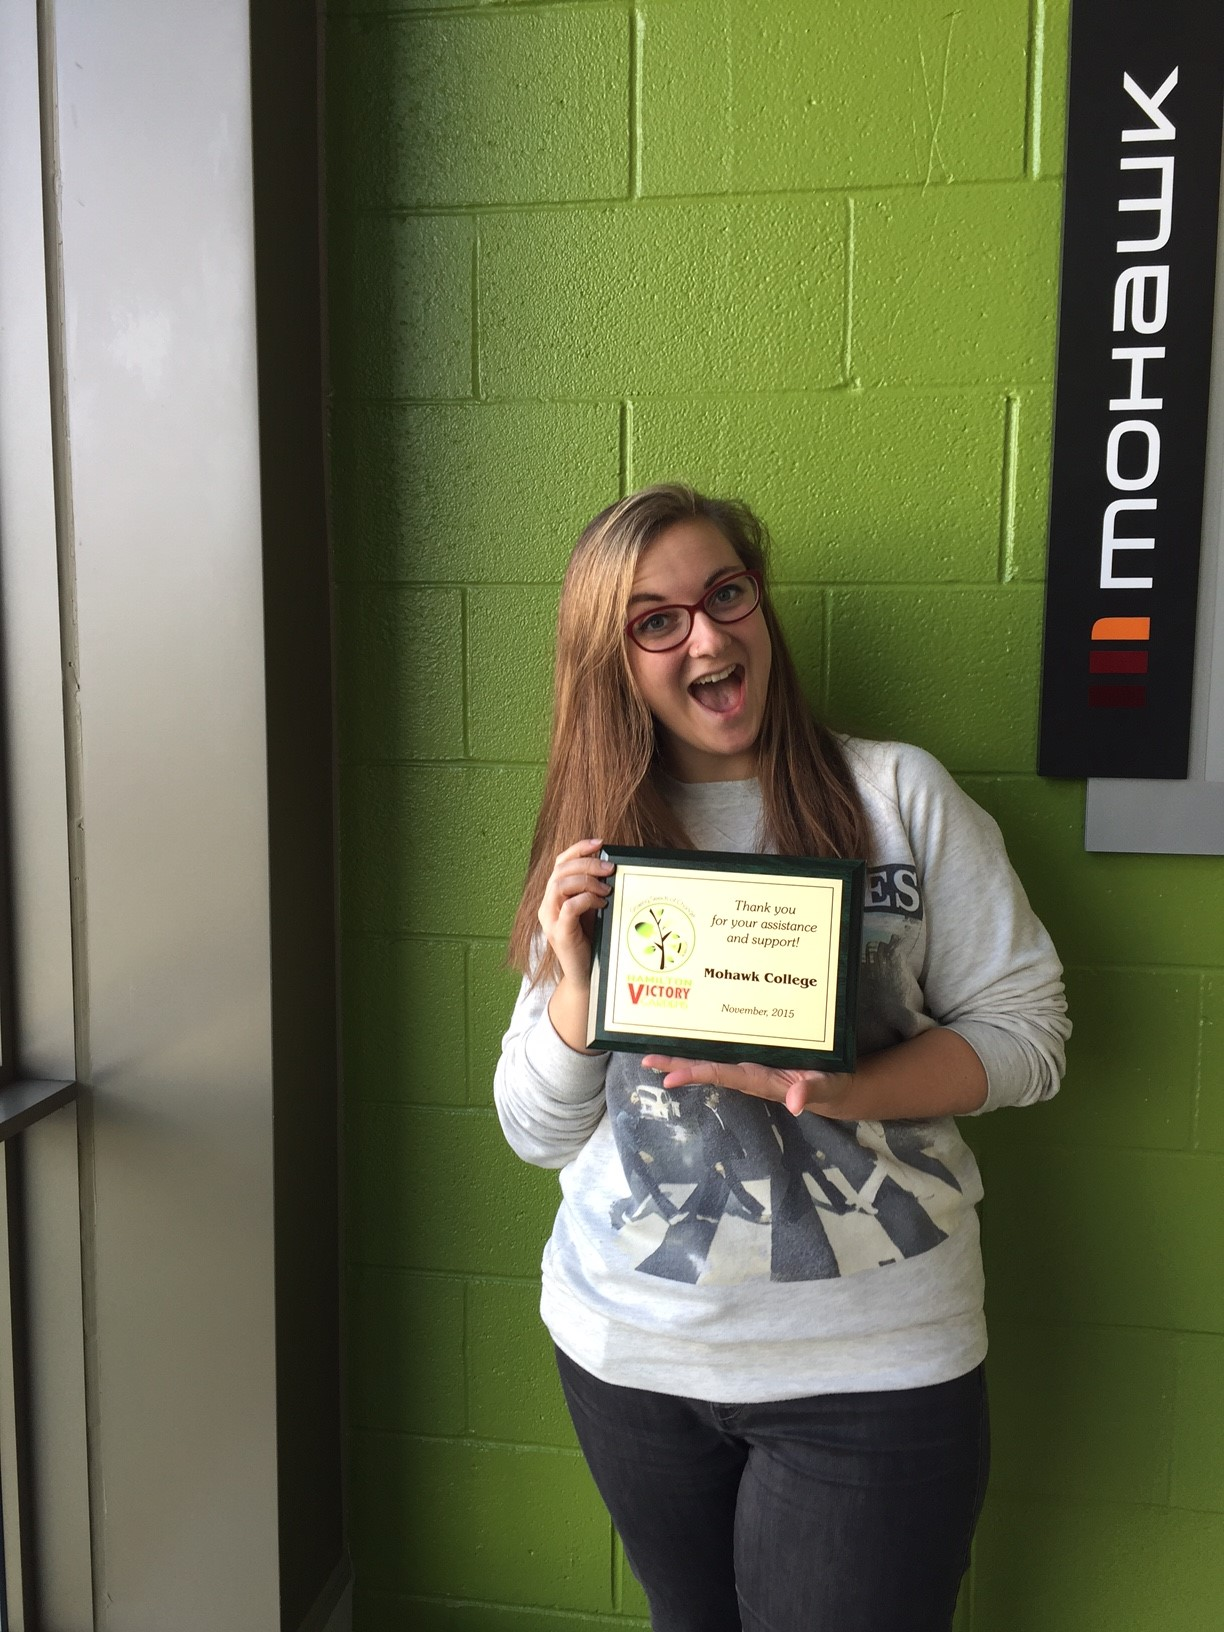 Mohawk College Student Ashley Packer With a VG Award